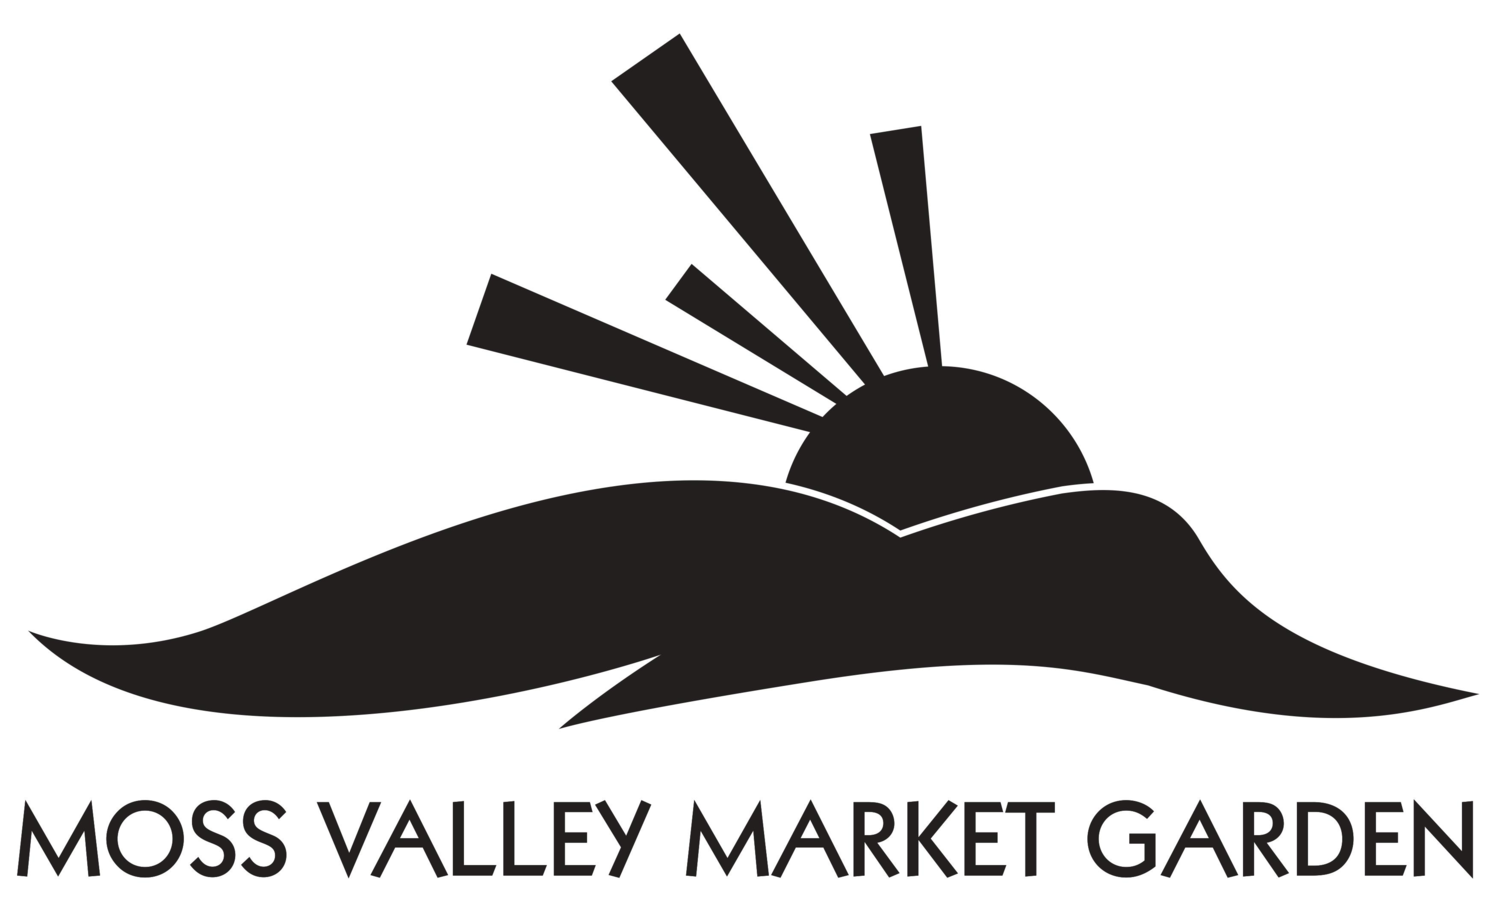 Moss Valley Market Garden